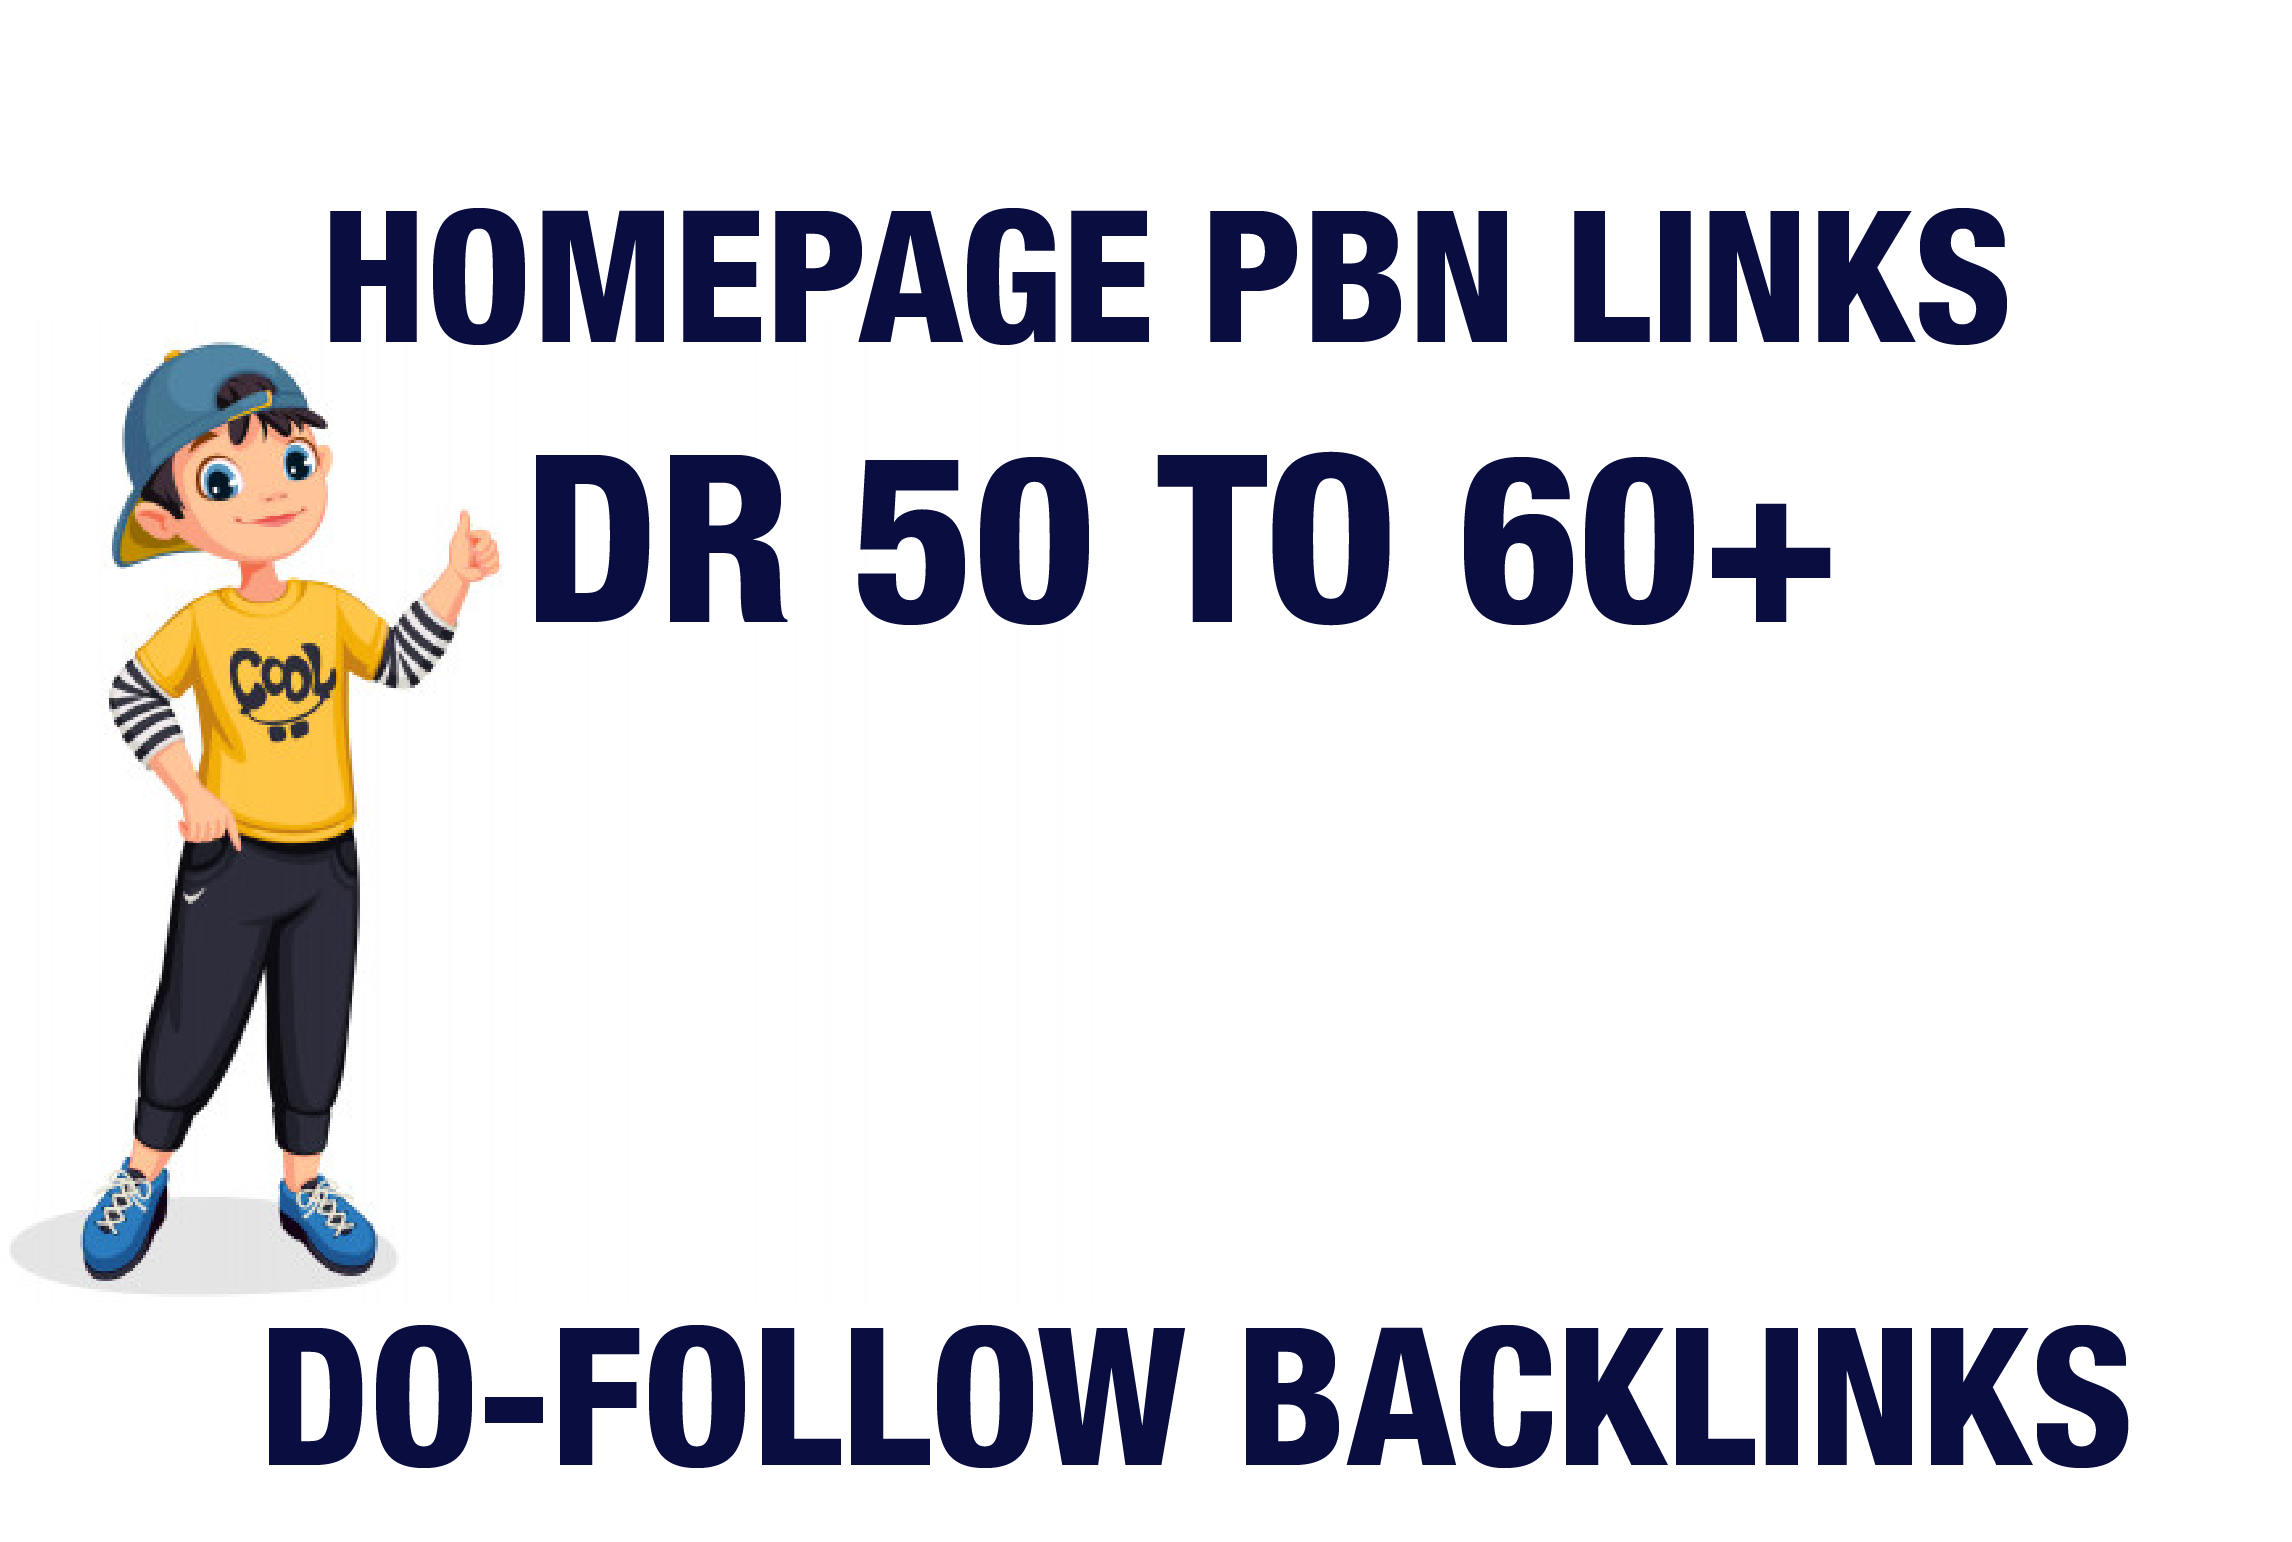 I will Provide 3 DR 50 TO 60 Plus Home Page PBN Backlinks